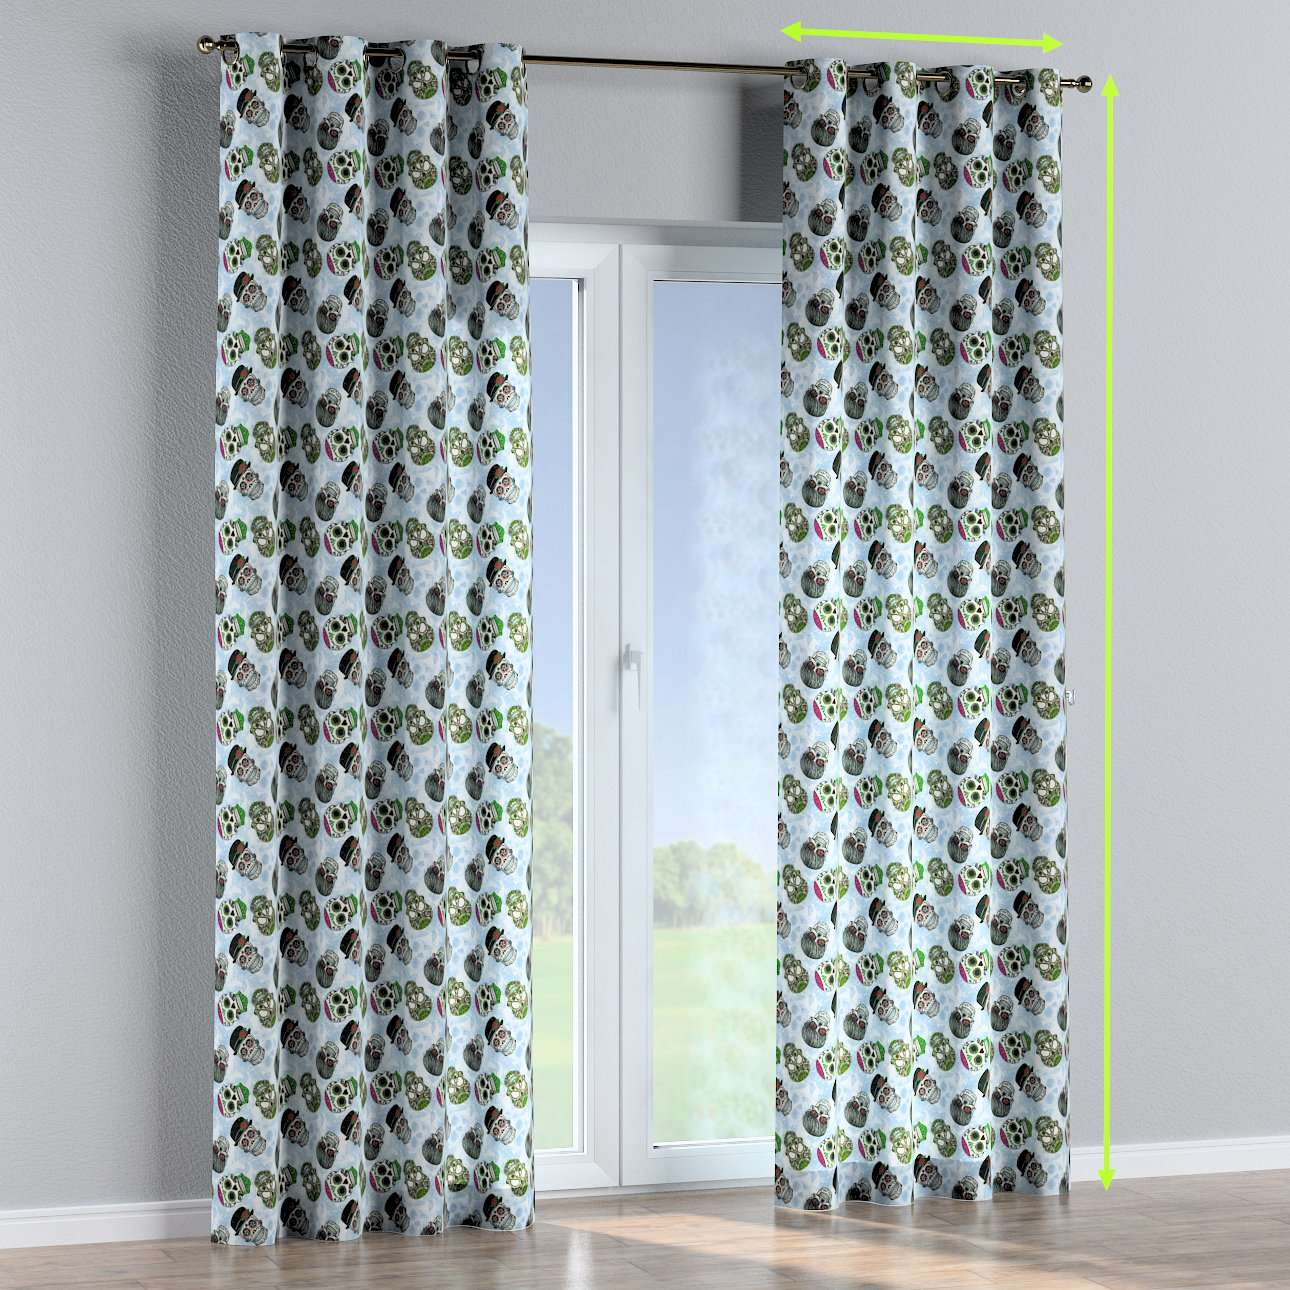 Eyelet curtains in collection Freestyle, fabric: 141-01